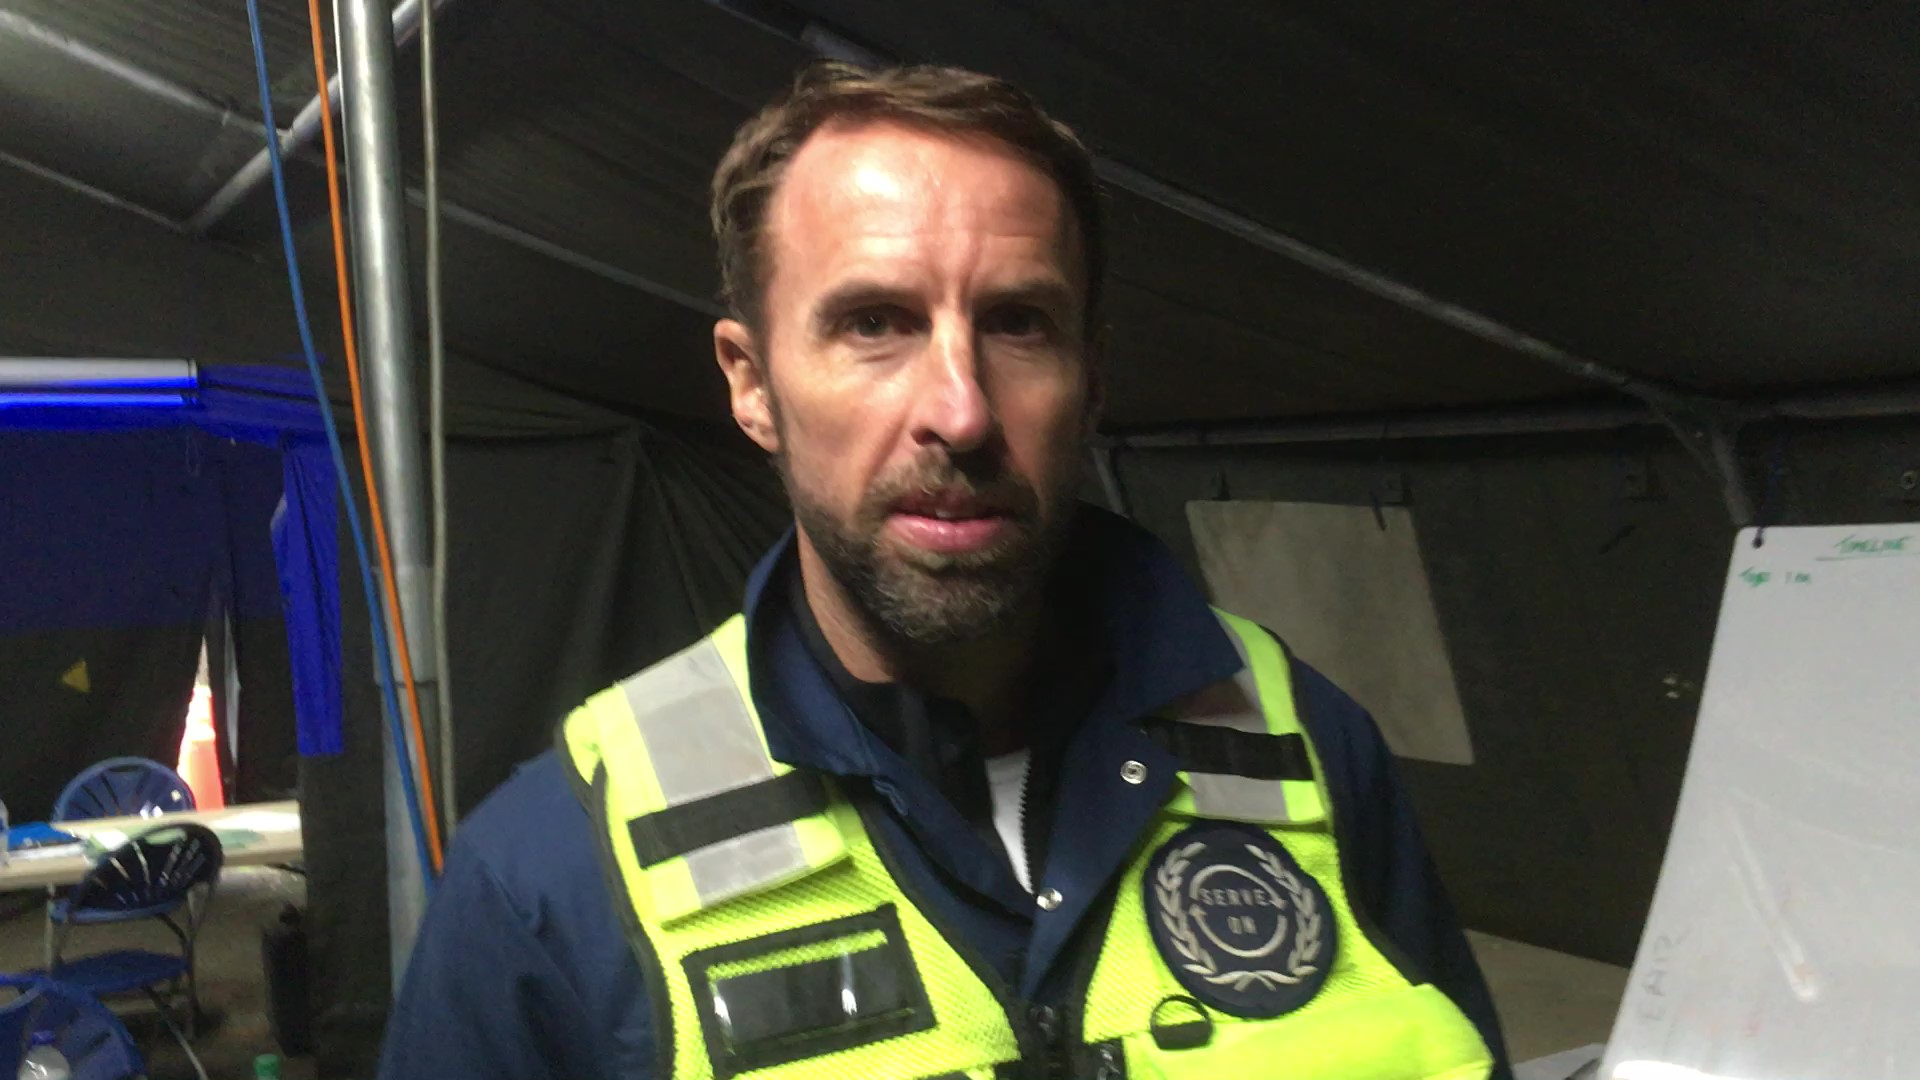 England football head coach Gareth Southgate in Serve On 'waistcoat' as he and other elite UK coaches were put through disaster scenarios by Serve On volunteers. Photo by Martin Phillips, Serve On